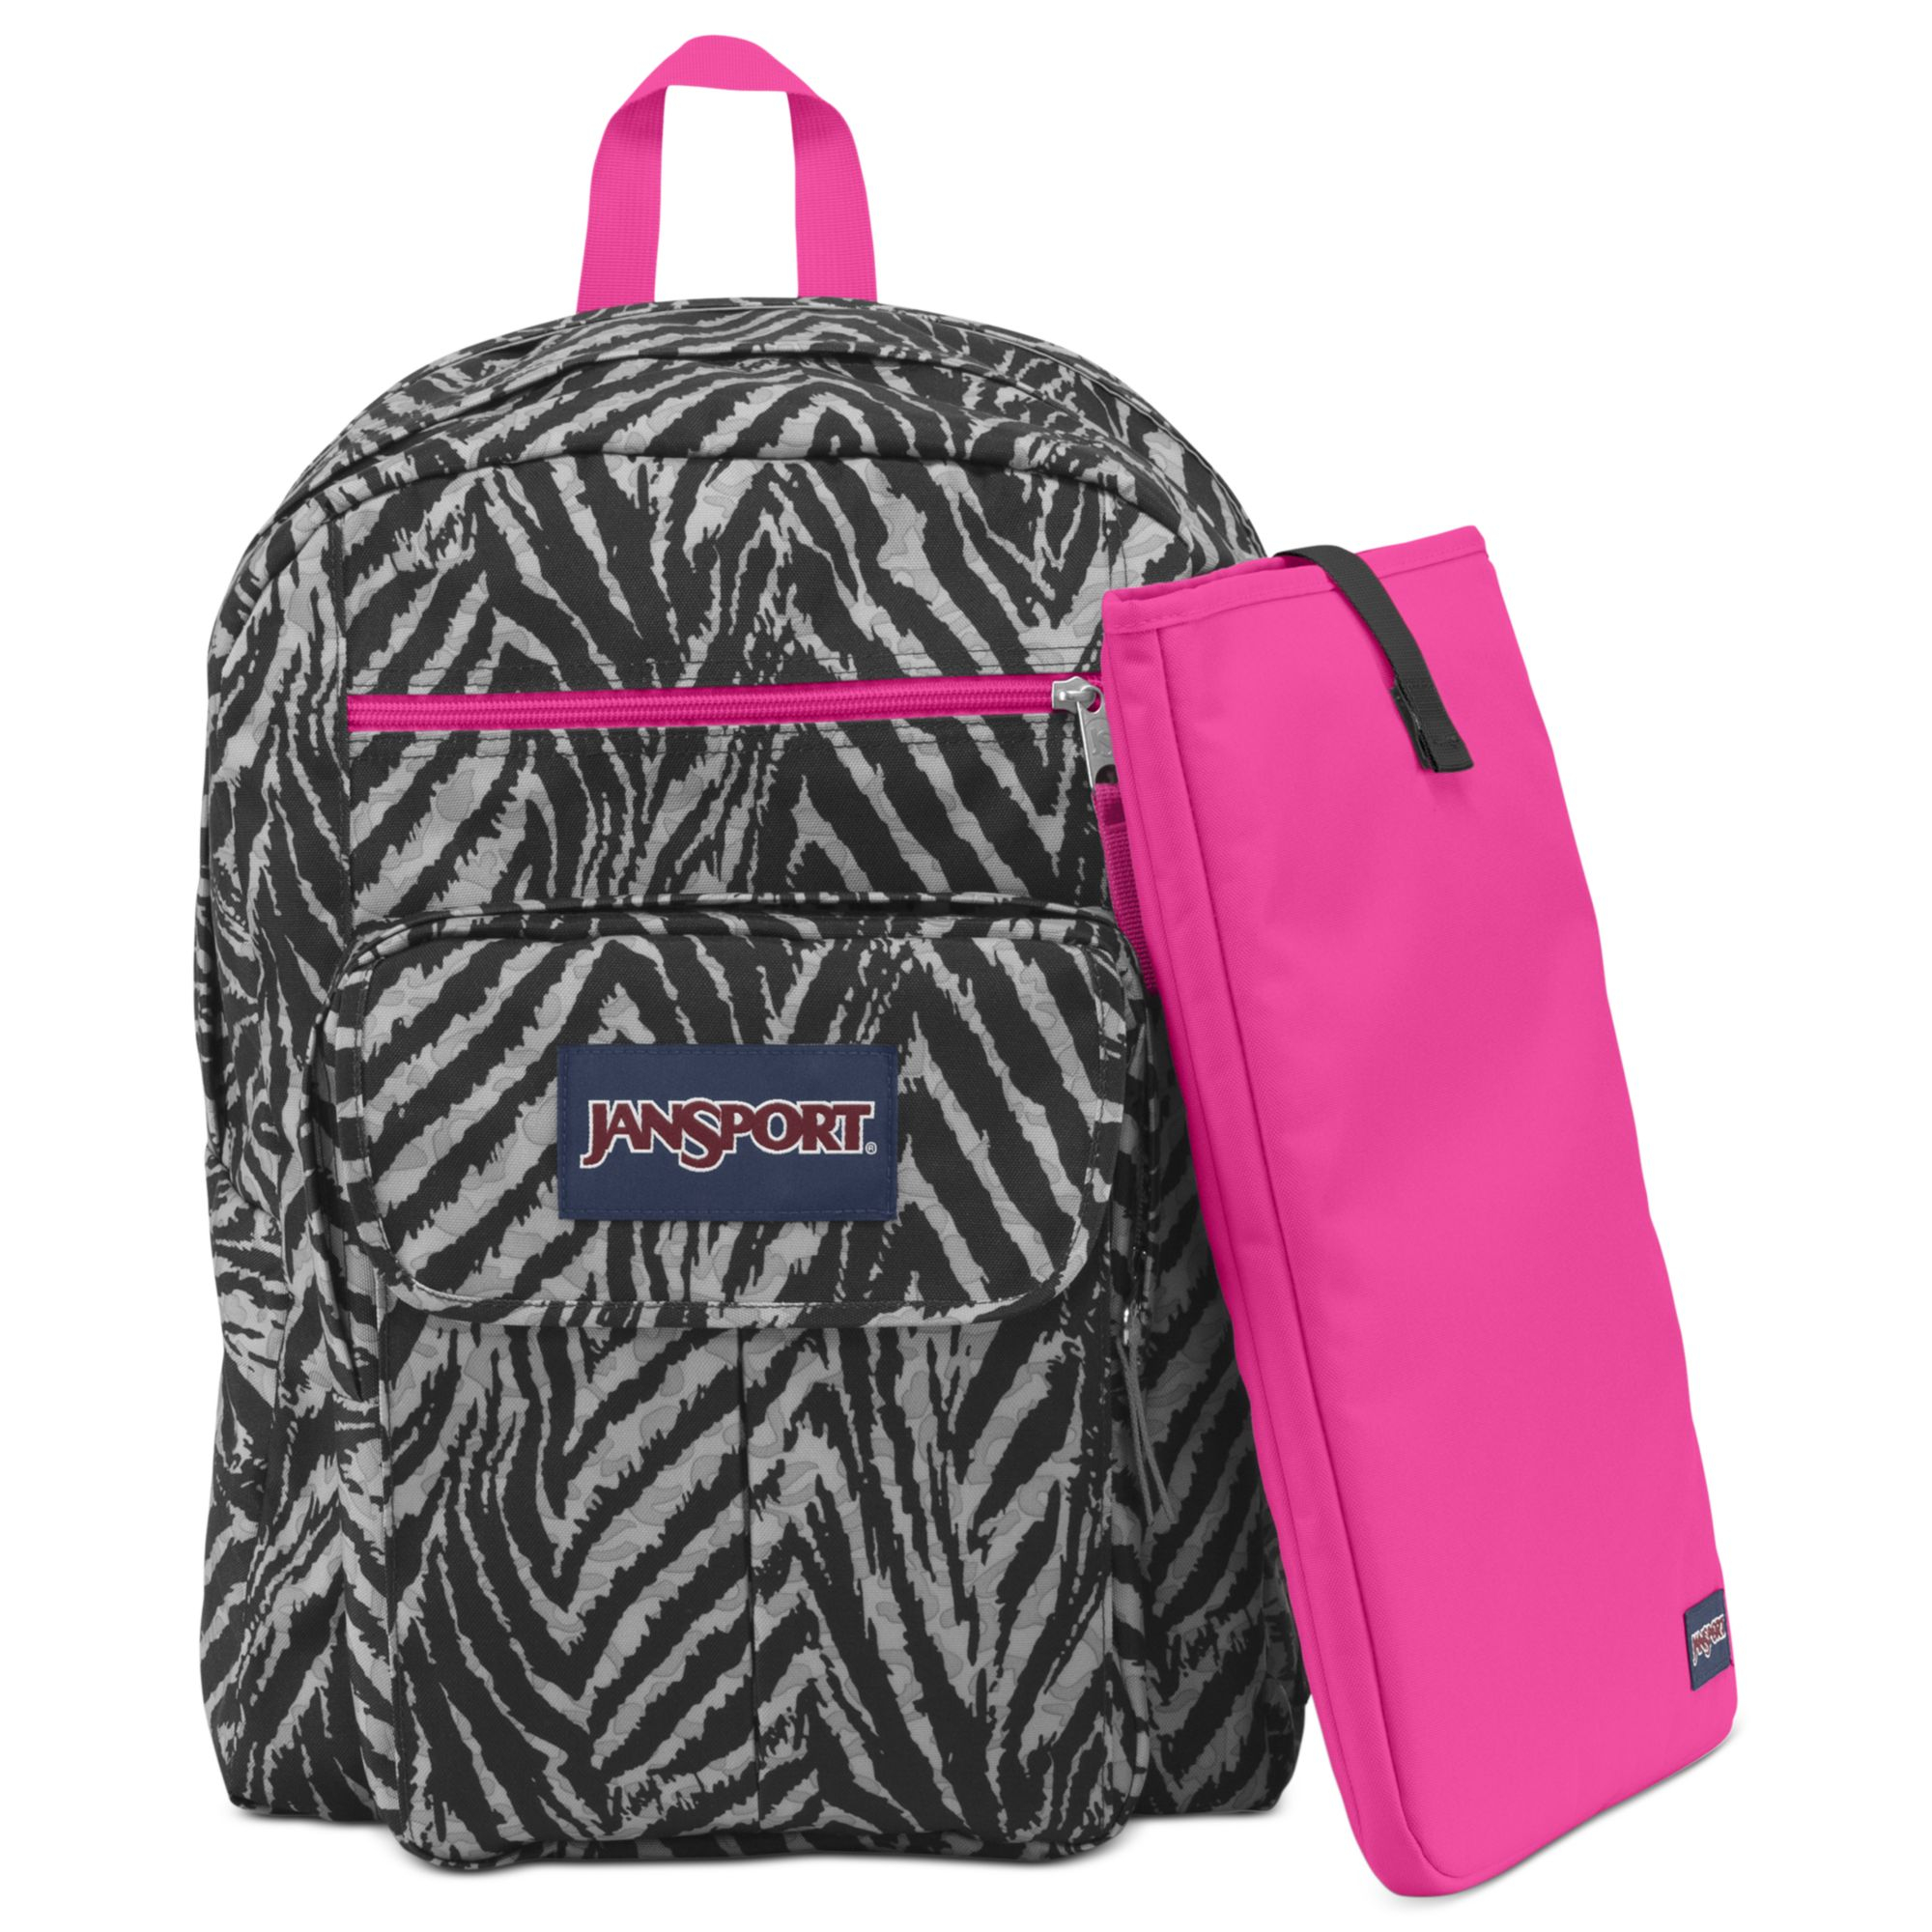 Pink Jansport Backpack Sale - Crazy Backpacks